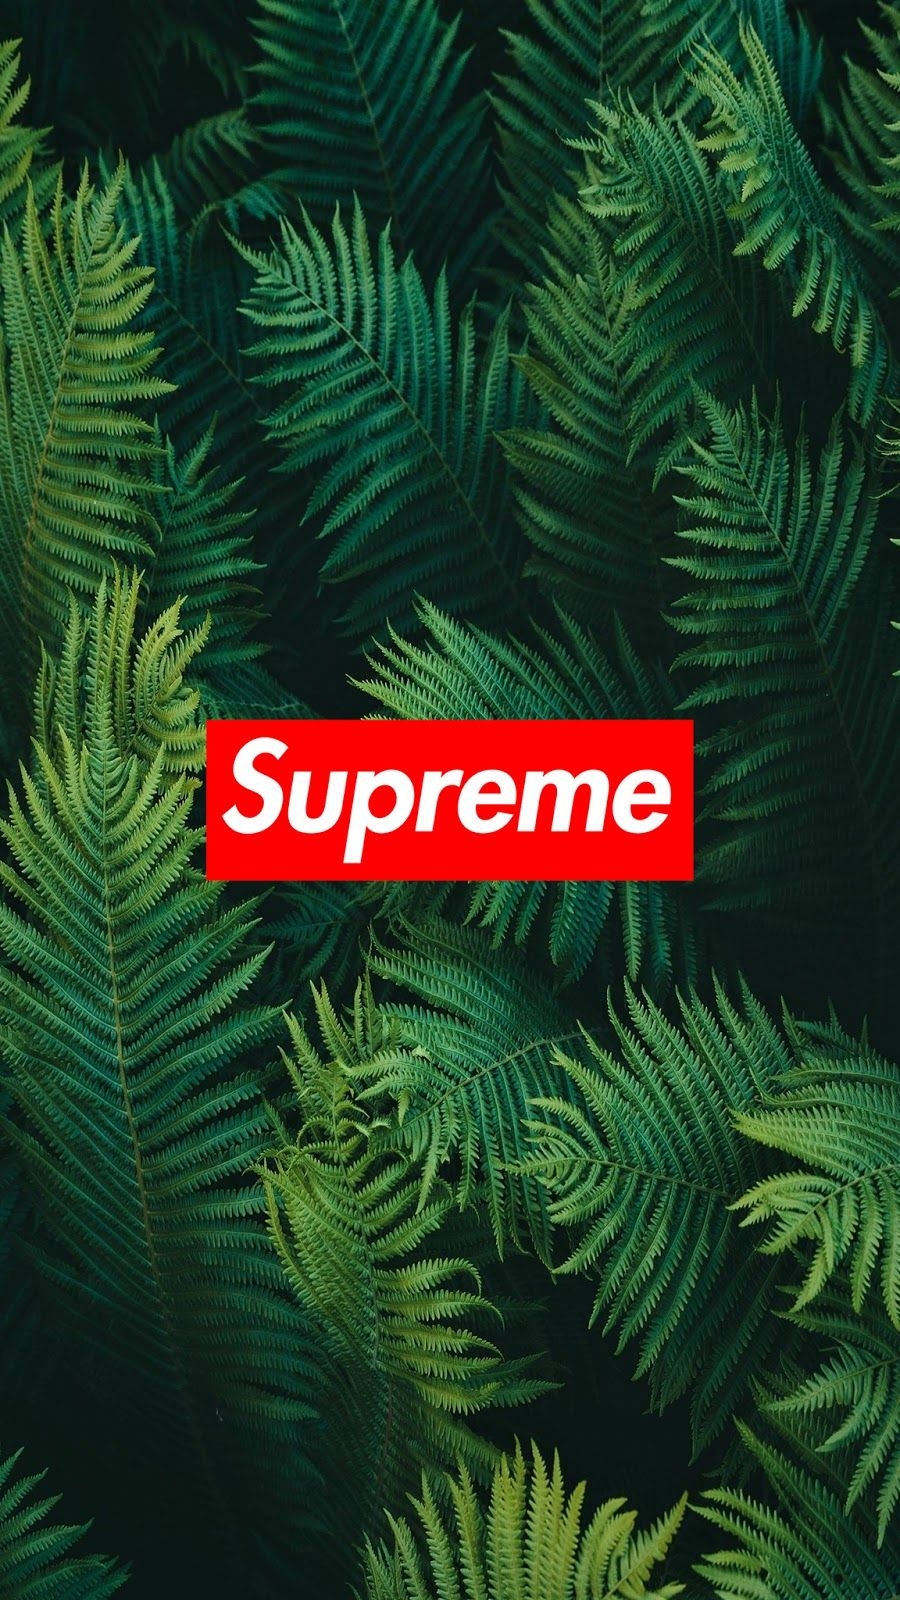 Supreme Wallpaper Collection For Mobile Cool Wallpapers Heroscreen Cc Supreme Wallpaper Supreme Iphone Wallpaper Hypebeast Wallpaper